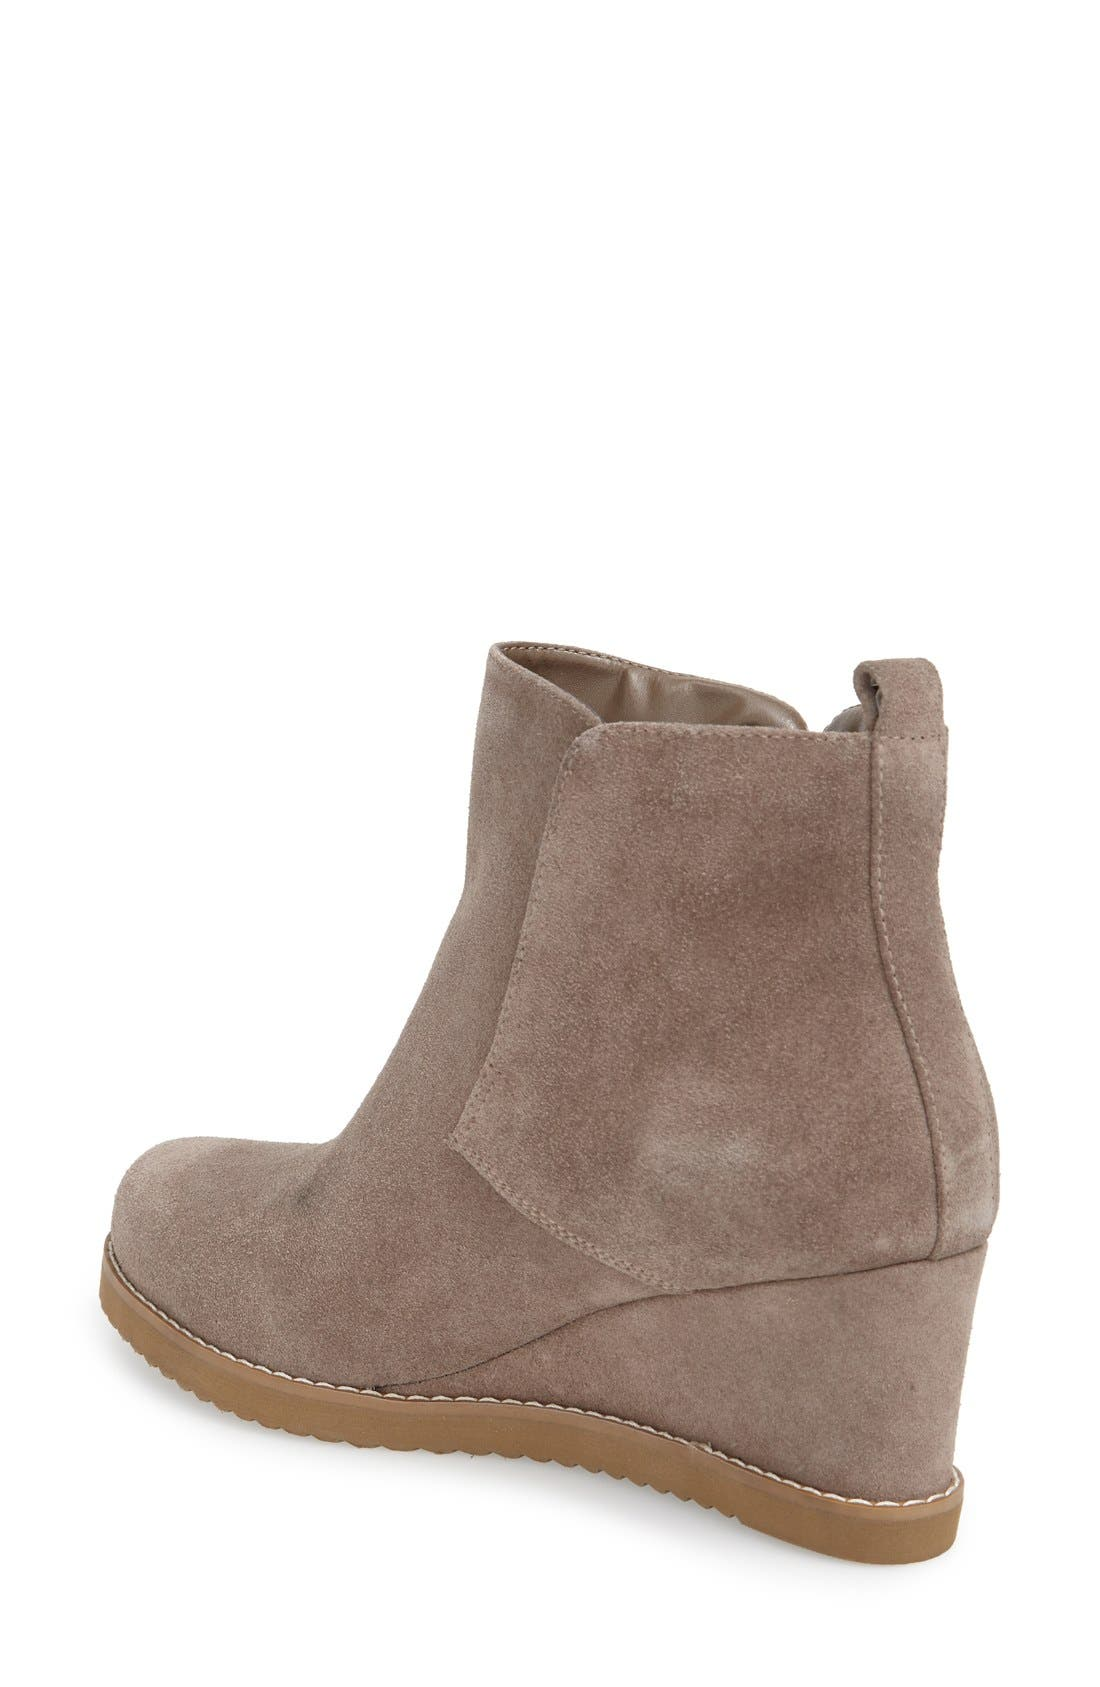 'Karla' Waterproof Wedge Bootie,                             Alternate thumbnail 5, color,